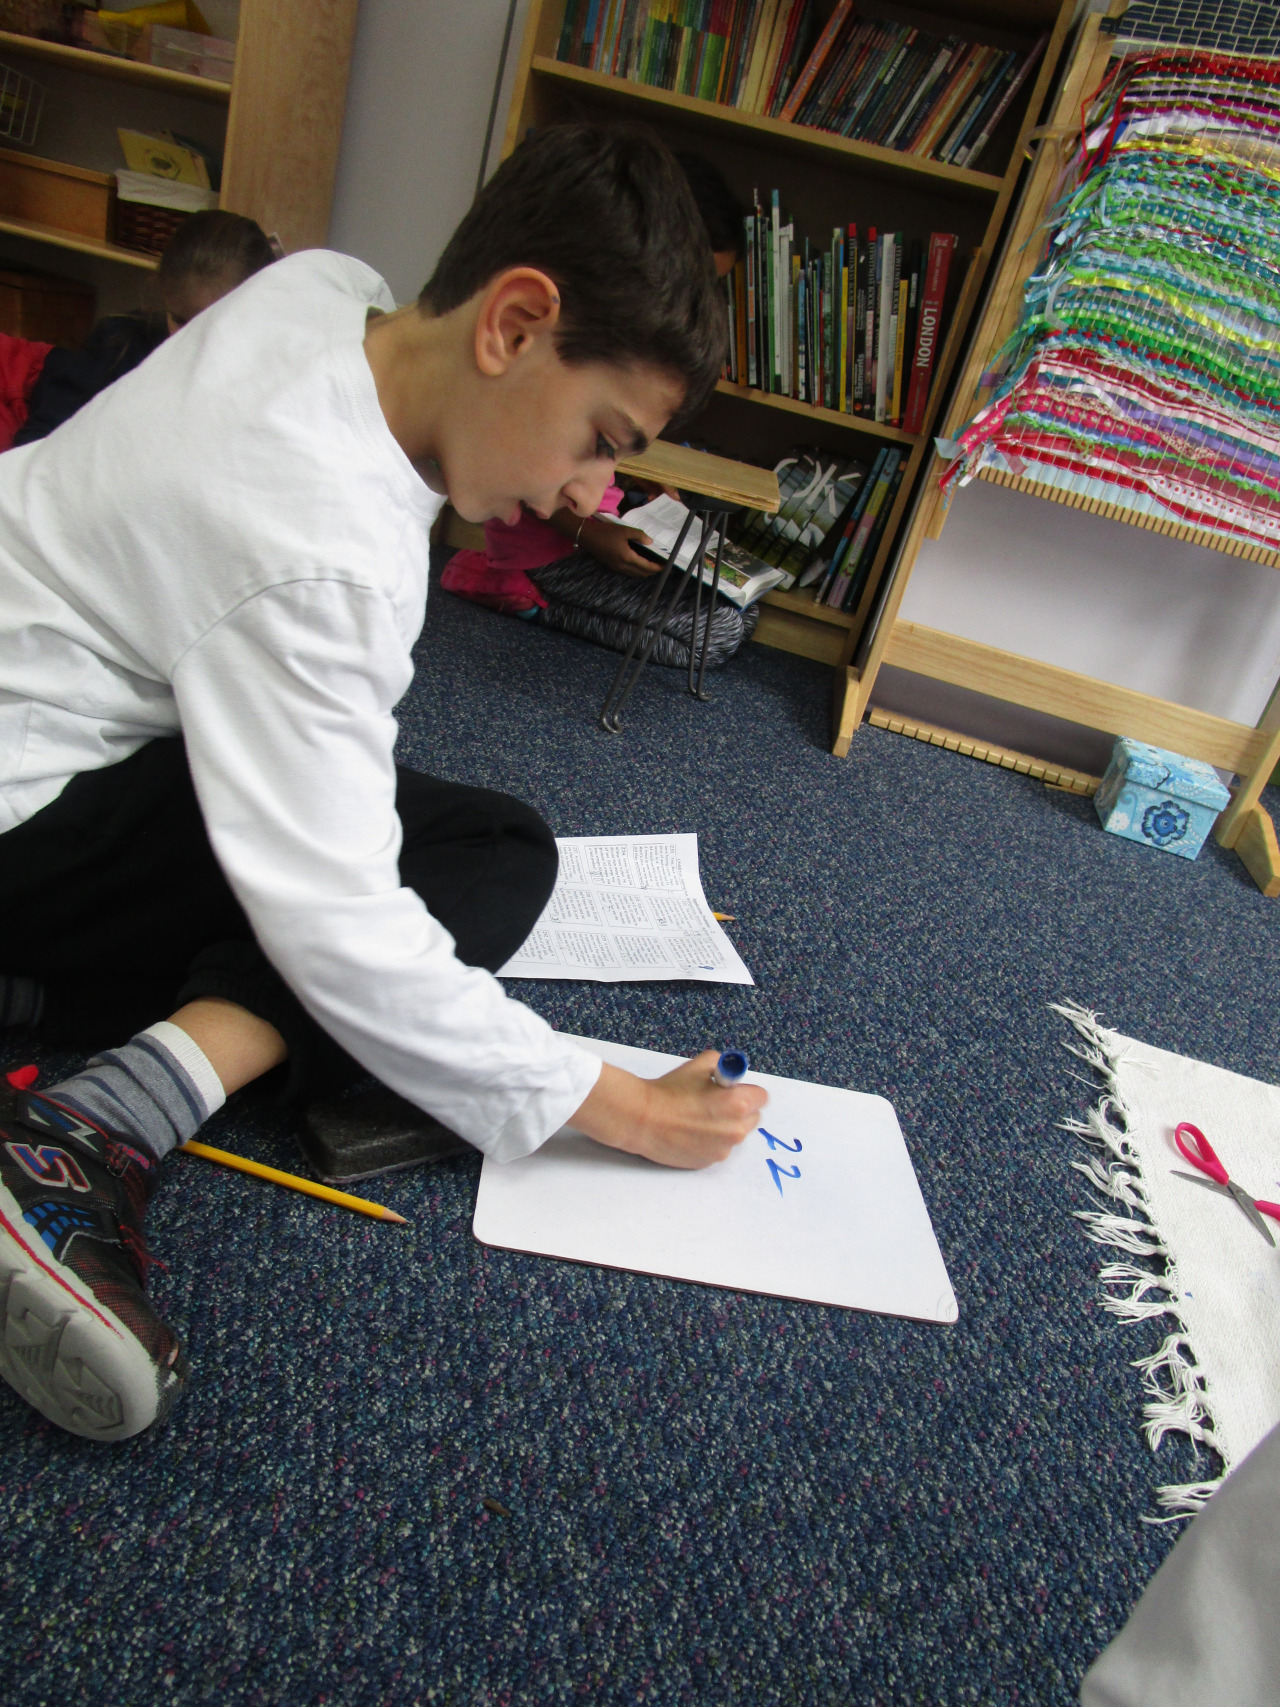 A Lower Elementary North student used a small white board to work out multi-step word problems.